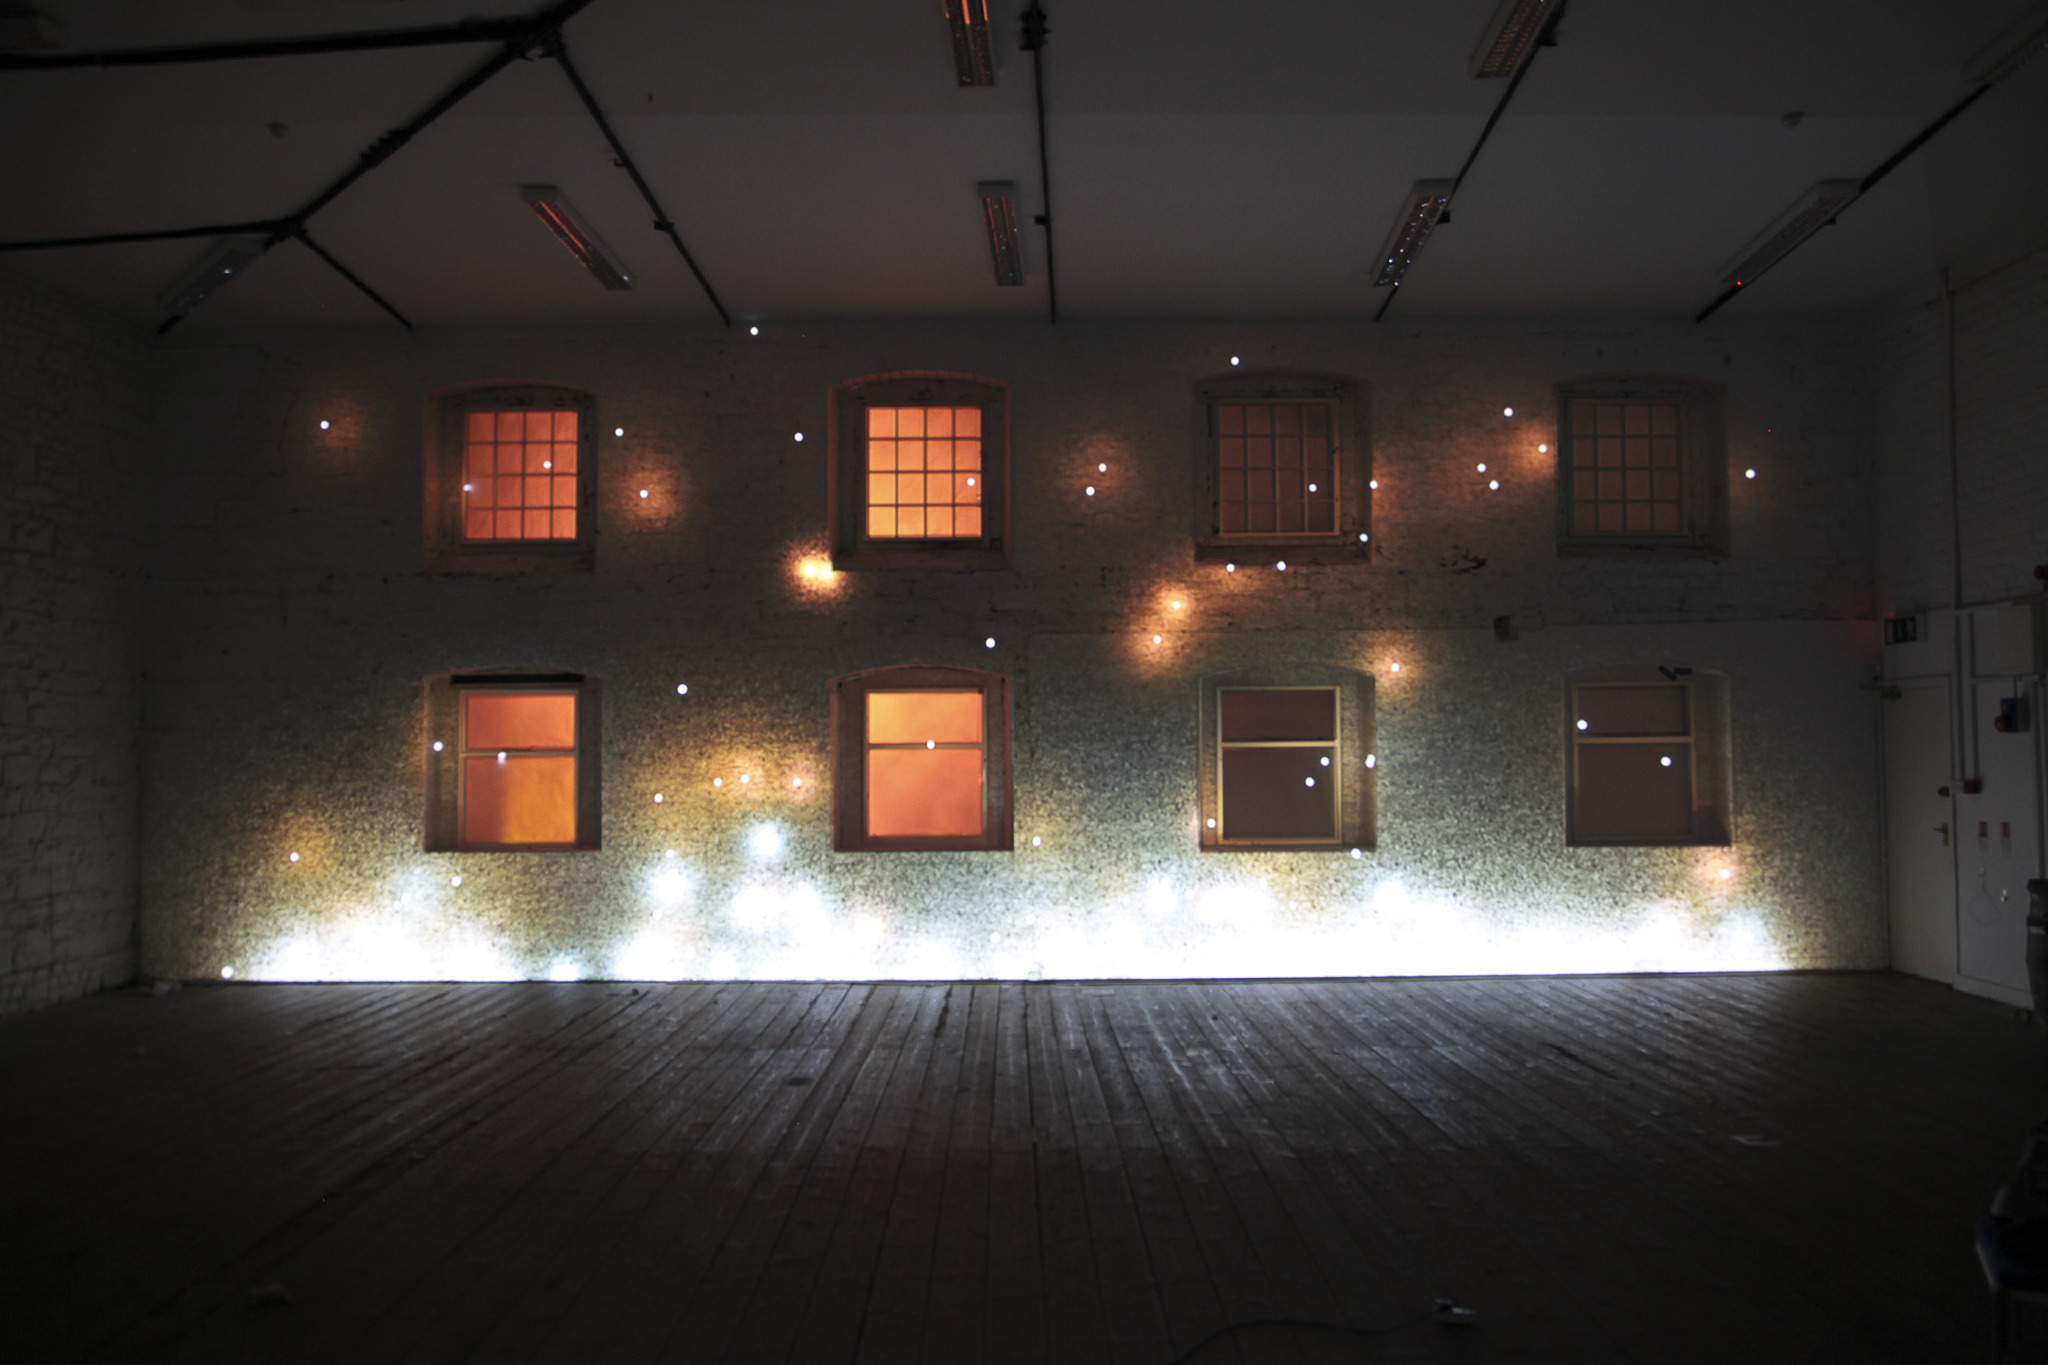 In Dublin Ireland a Projection mapping project using 3D and 2D motion graphics